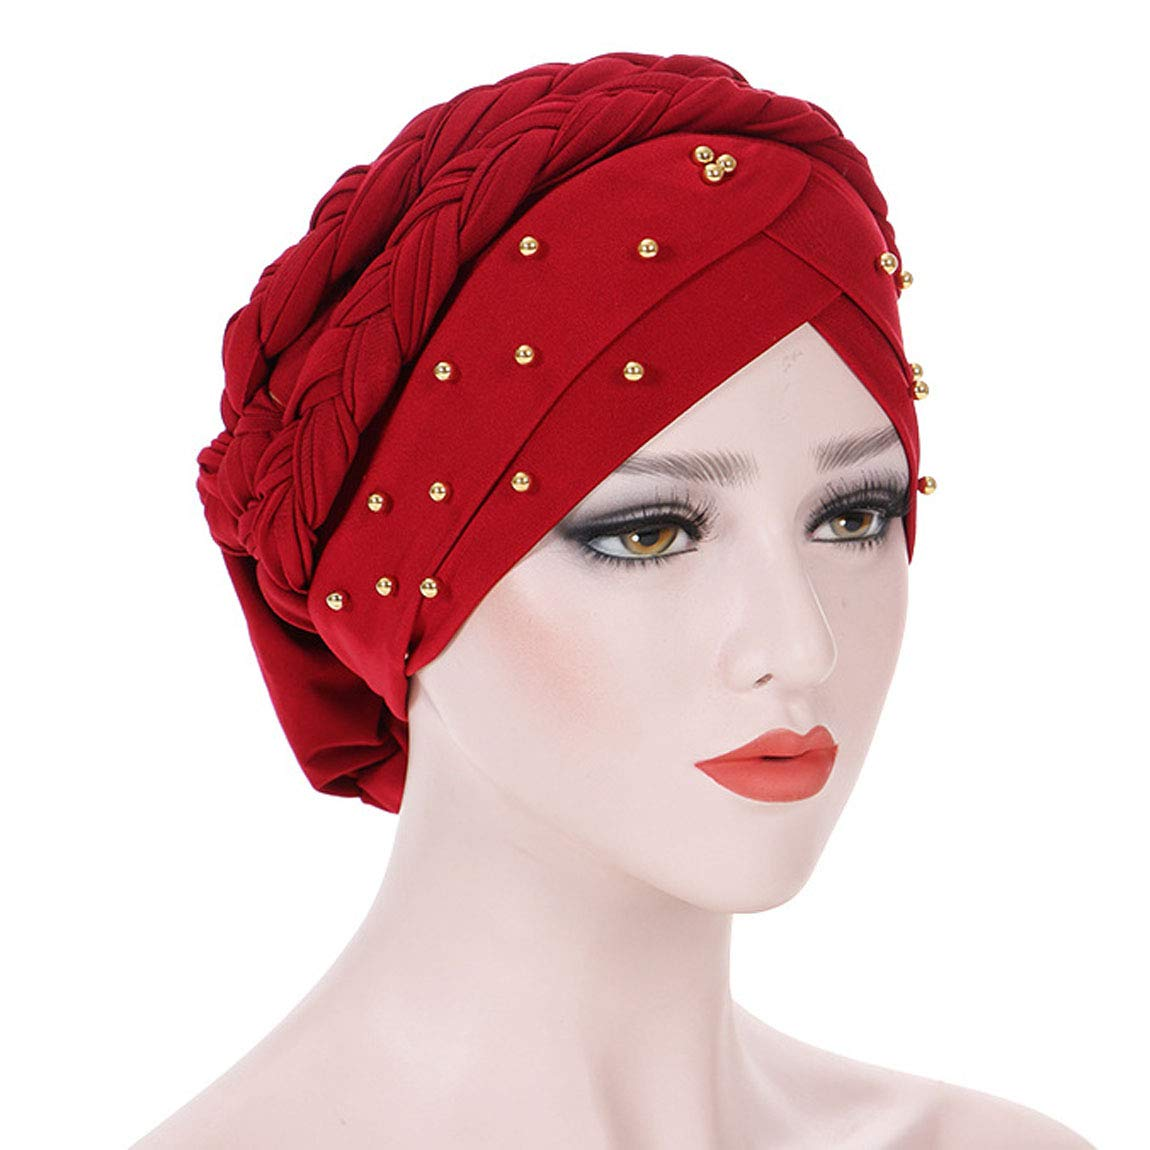 ACVIP Women's Beaded Solid Color Indian Muslim Headwrap Headwear 8AC08Y24M-3